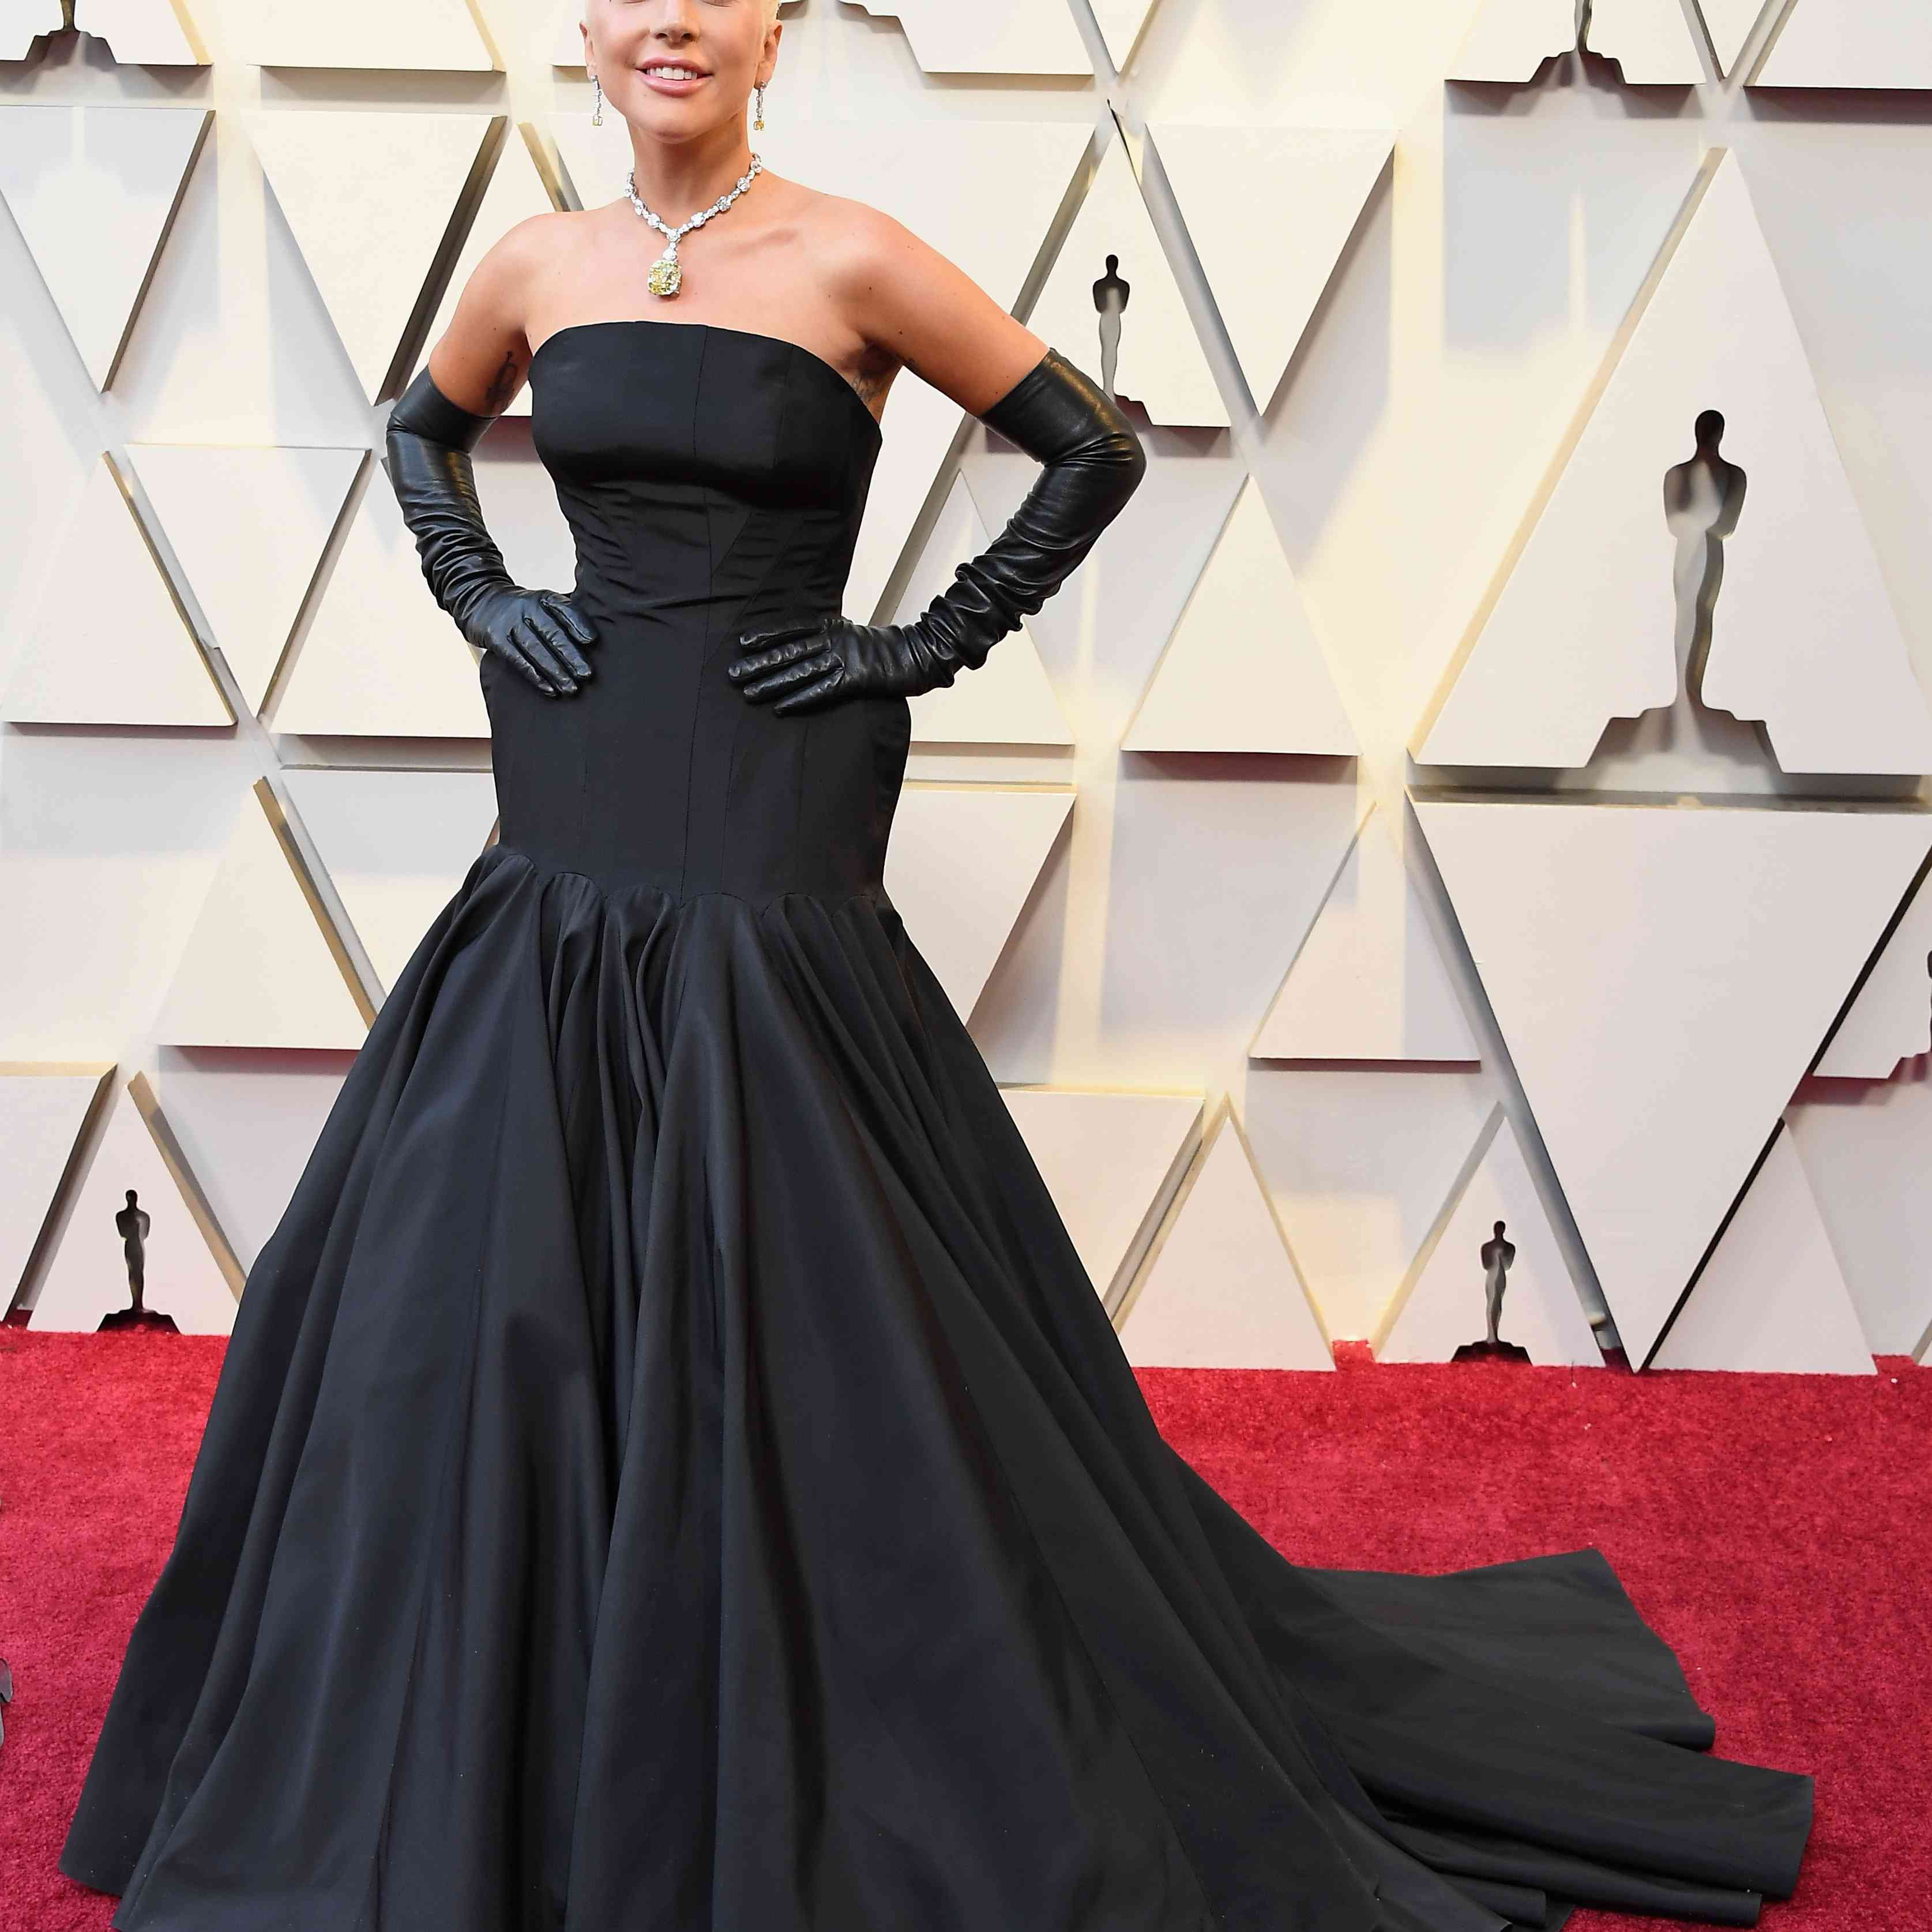 Lady Gagy in black gown and Tiffany diamond necklace on red carpet